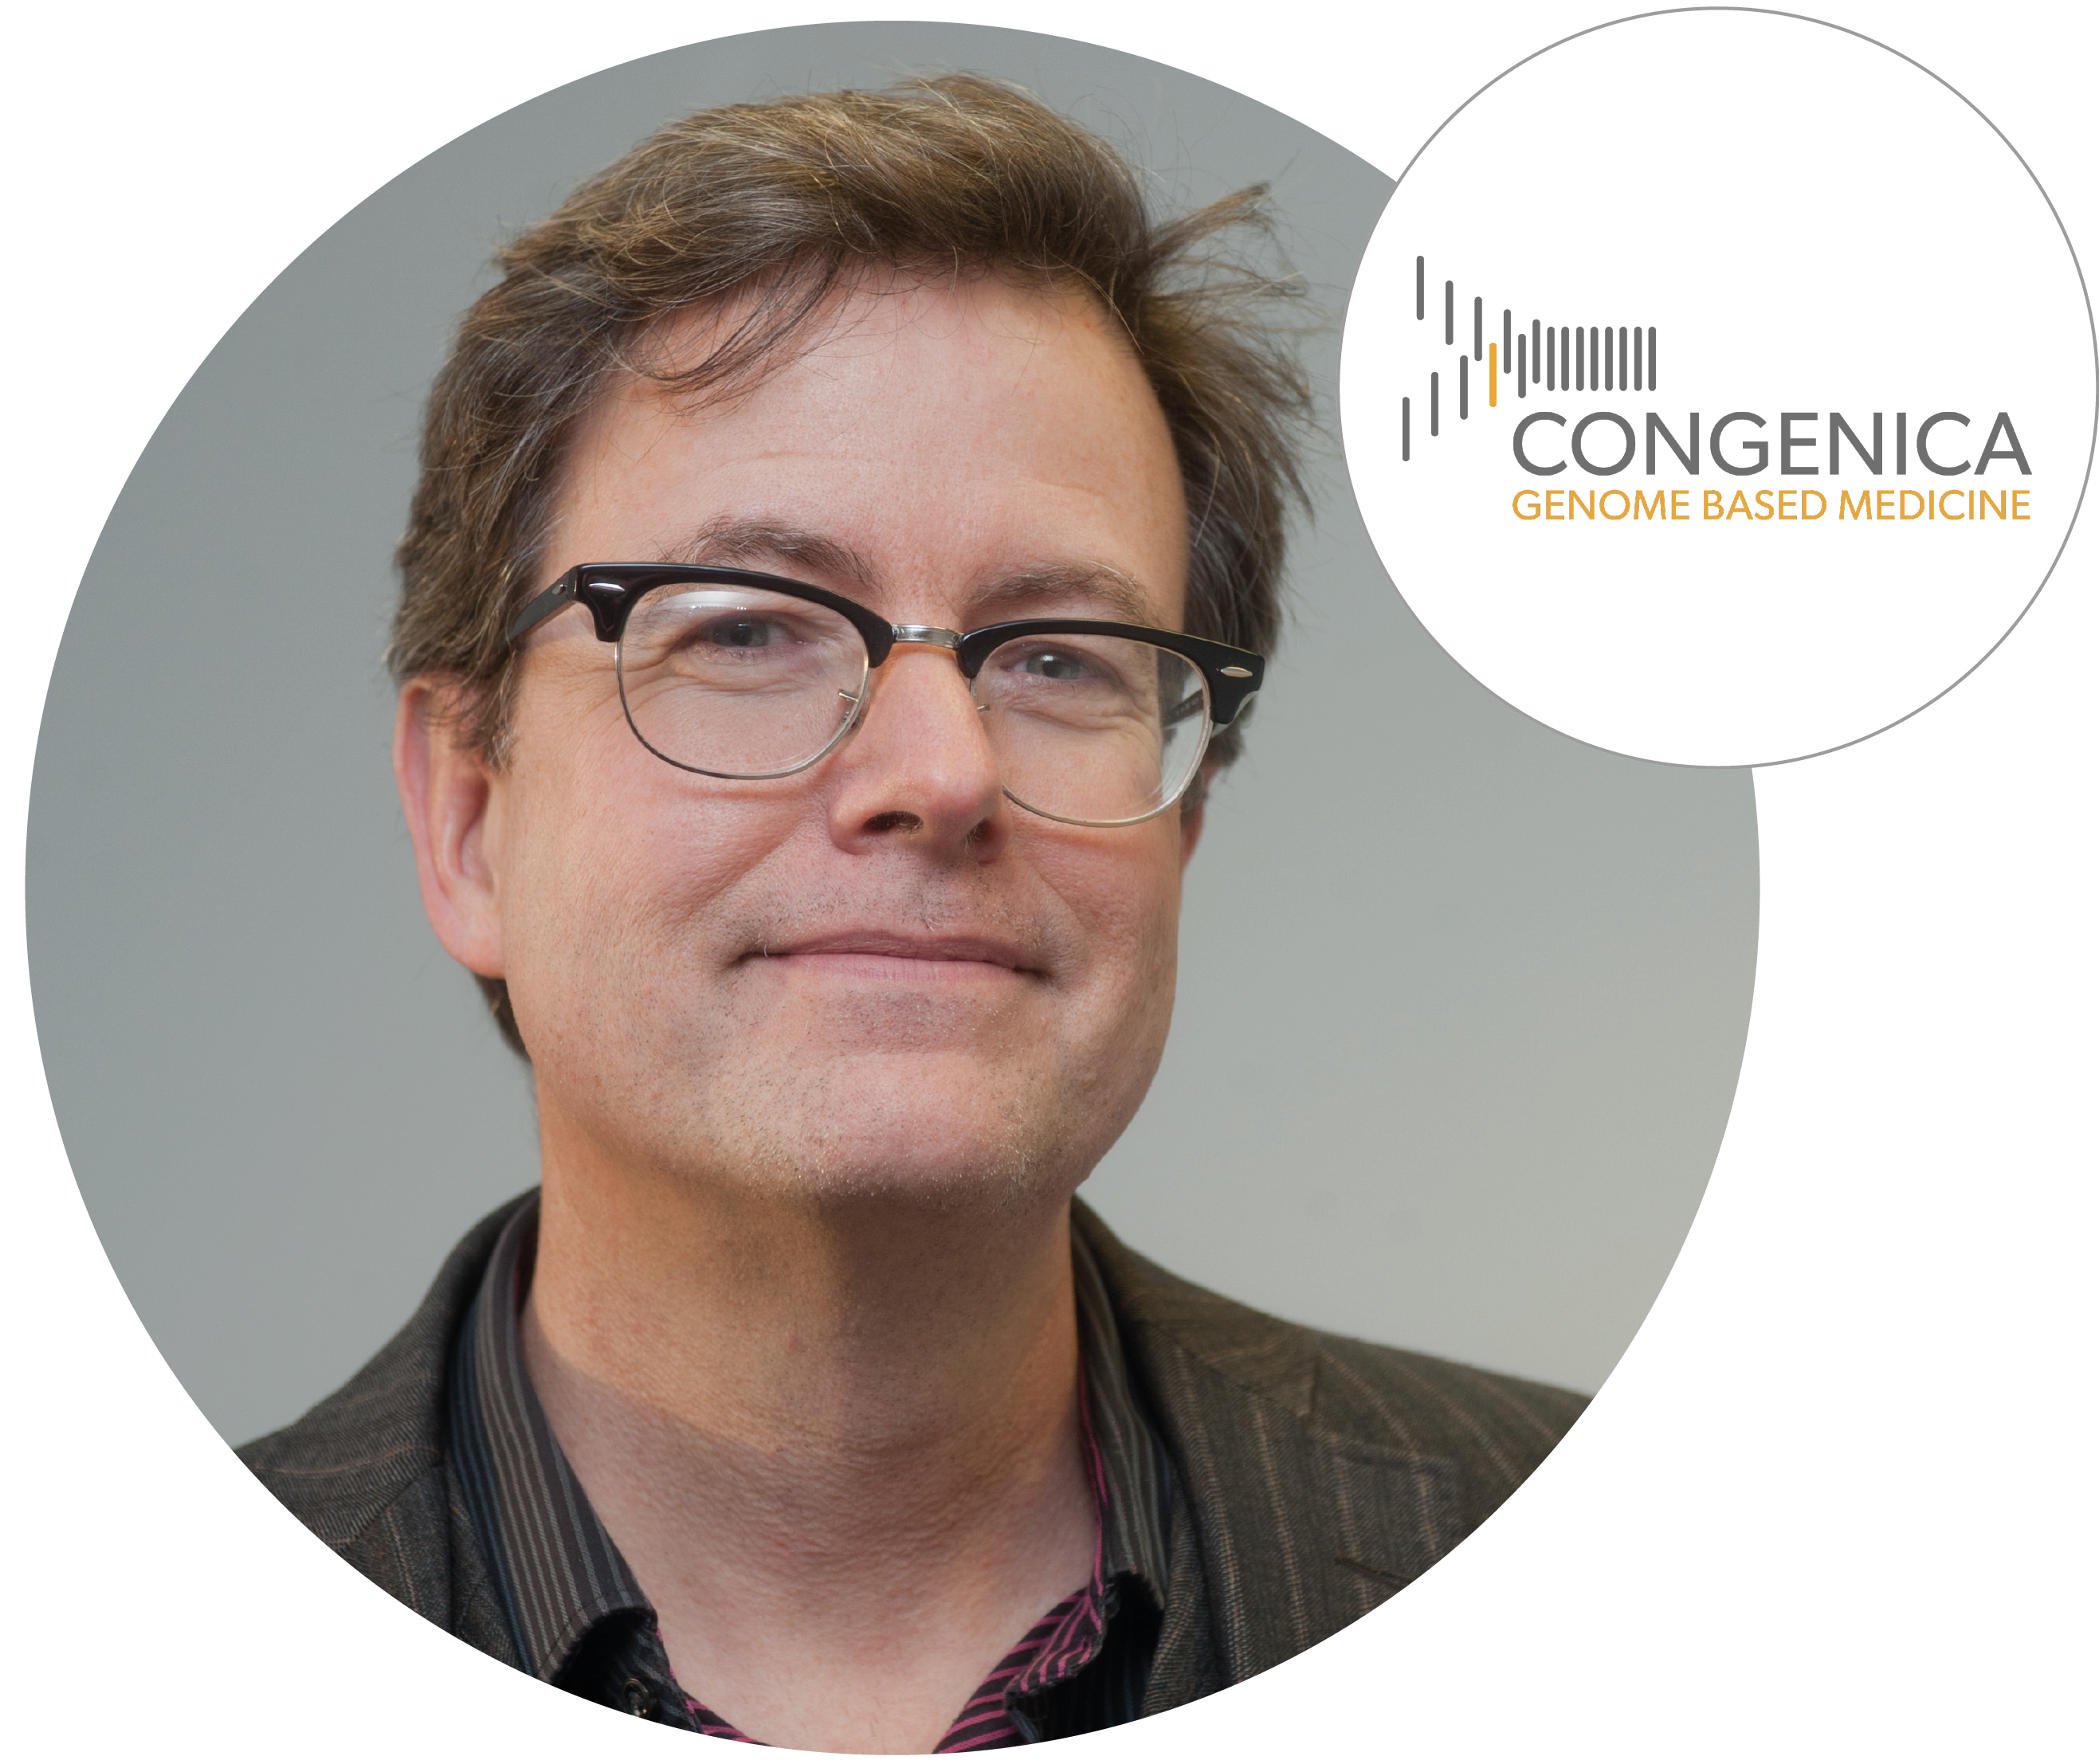 TOM WEAVER, CEO, CONGENICA